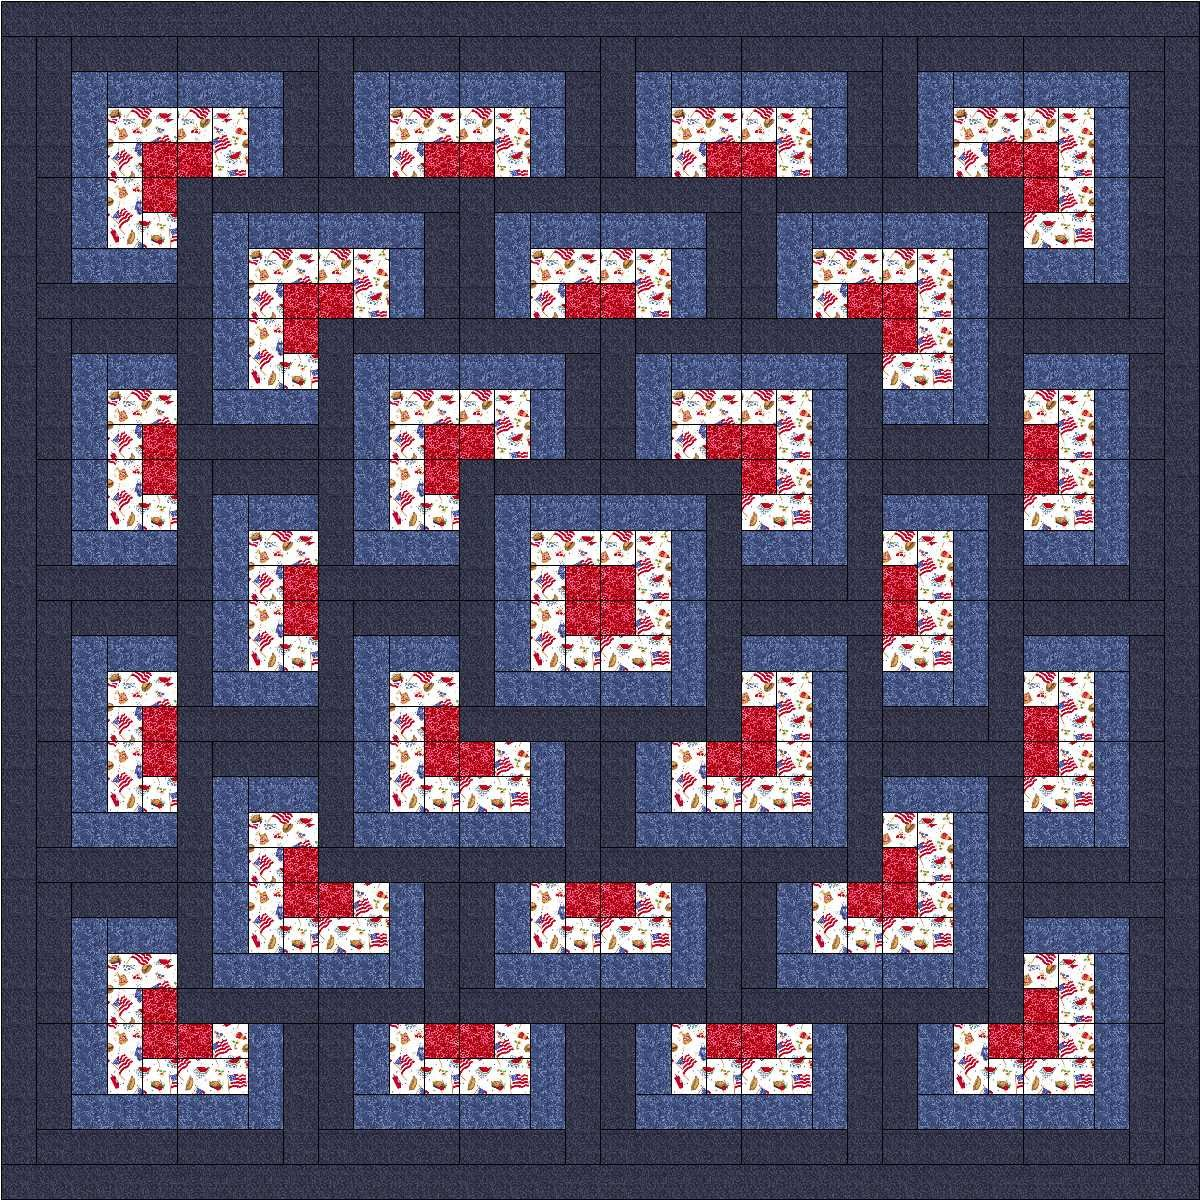 Easy Quilt Kit Boxed Maze/Patriotic/EXPEDITED SHIPPING/QUEEN Galaxy/RJR